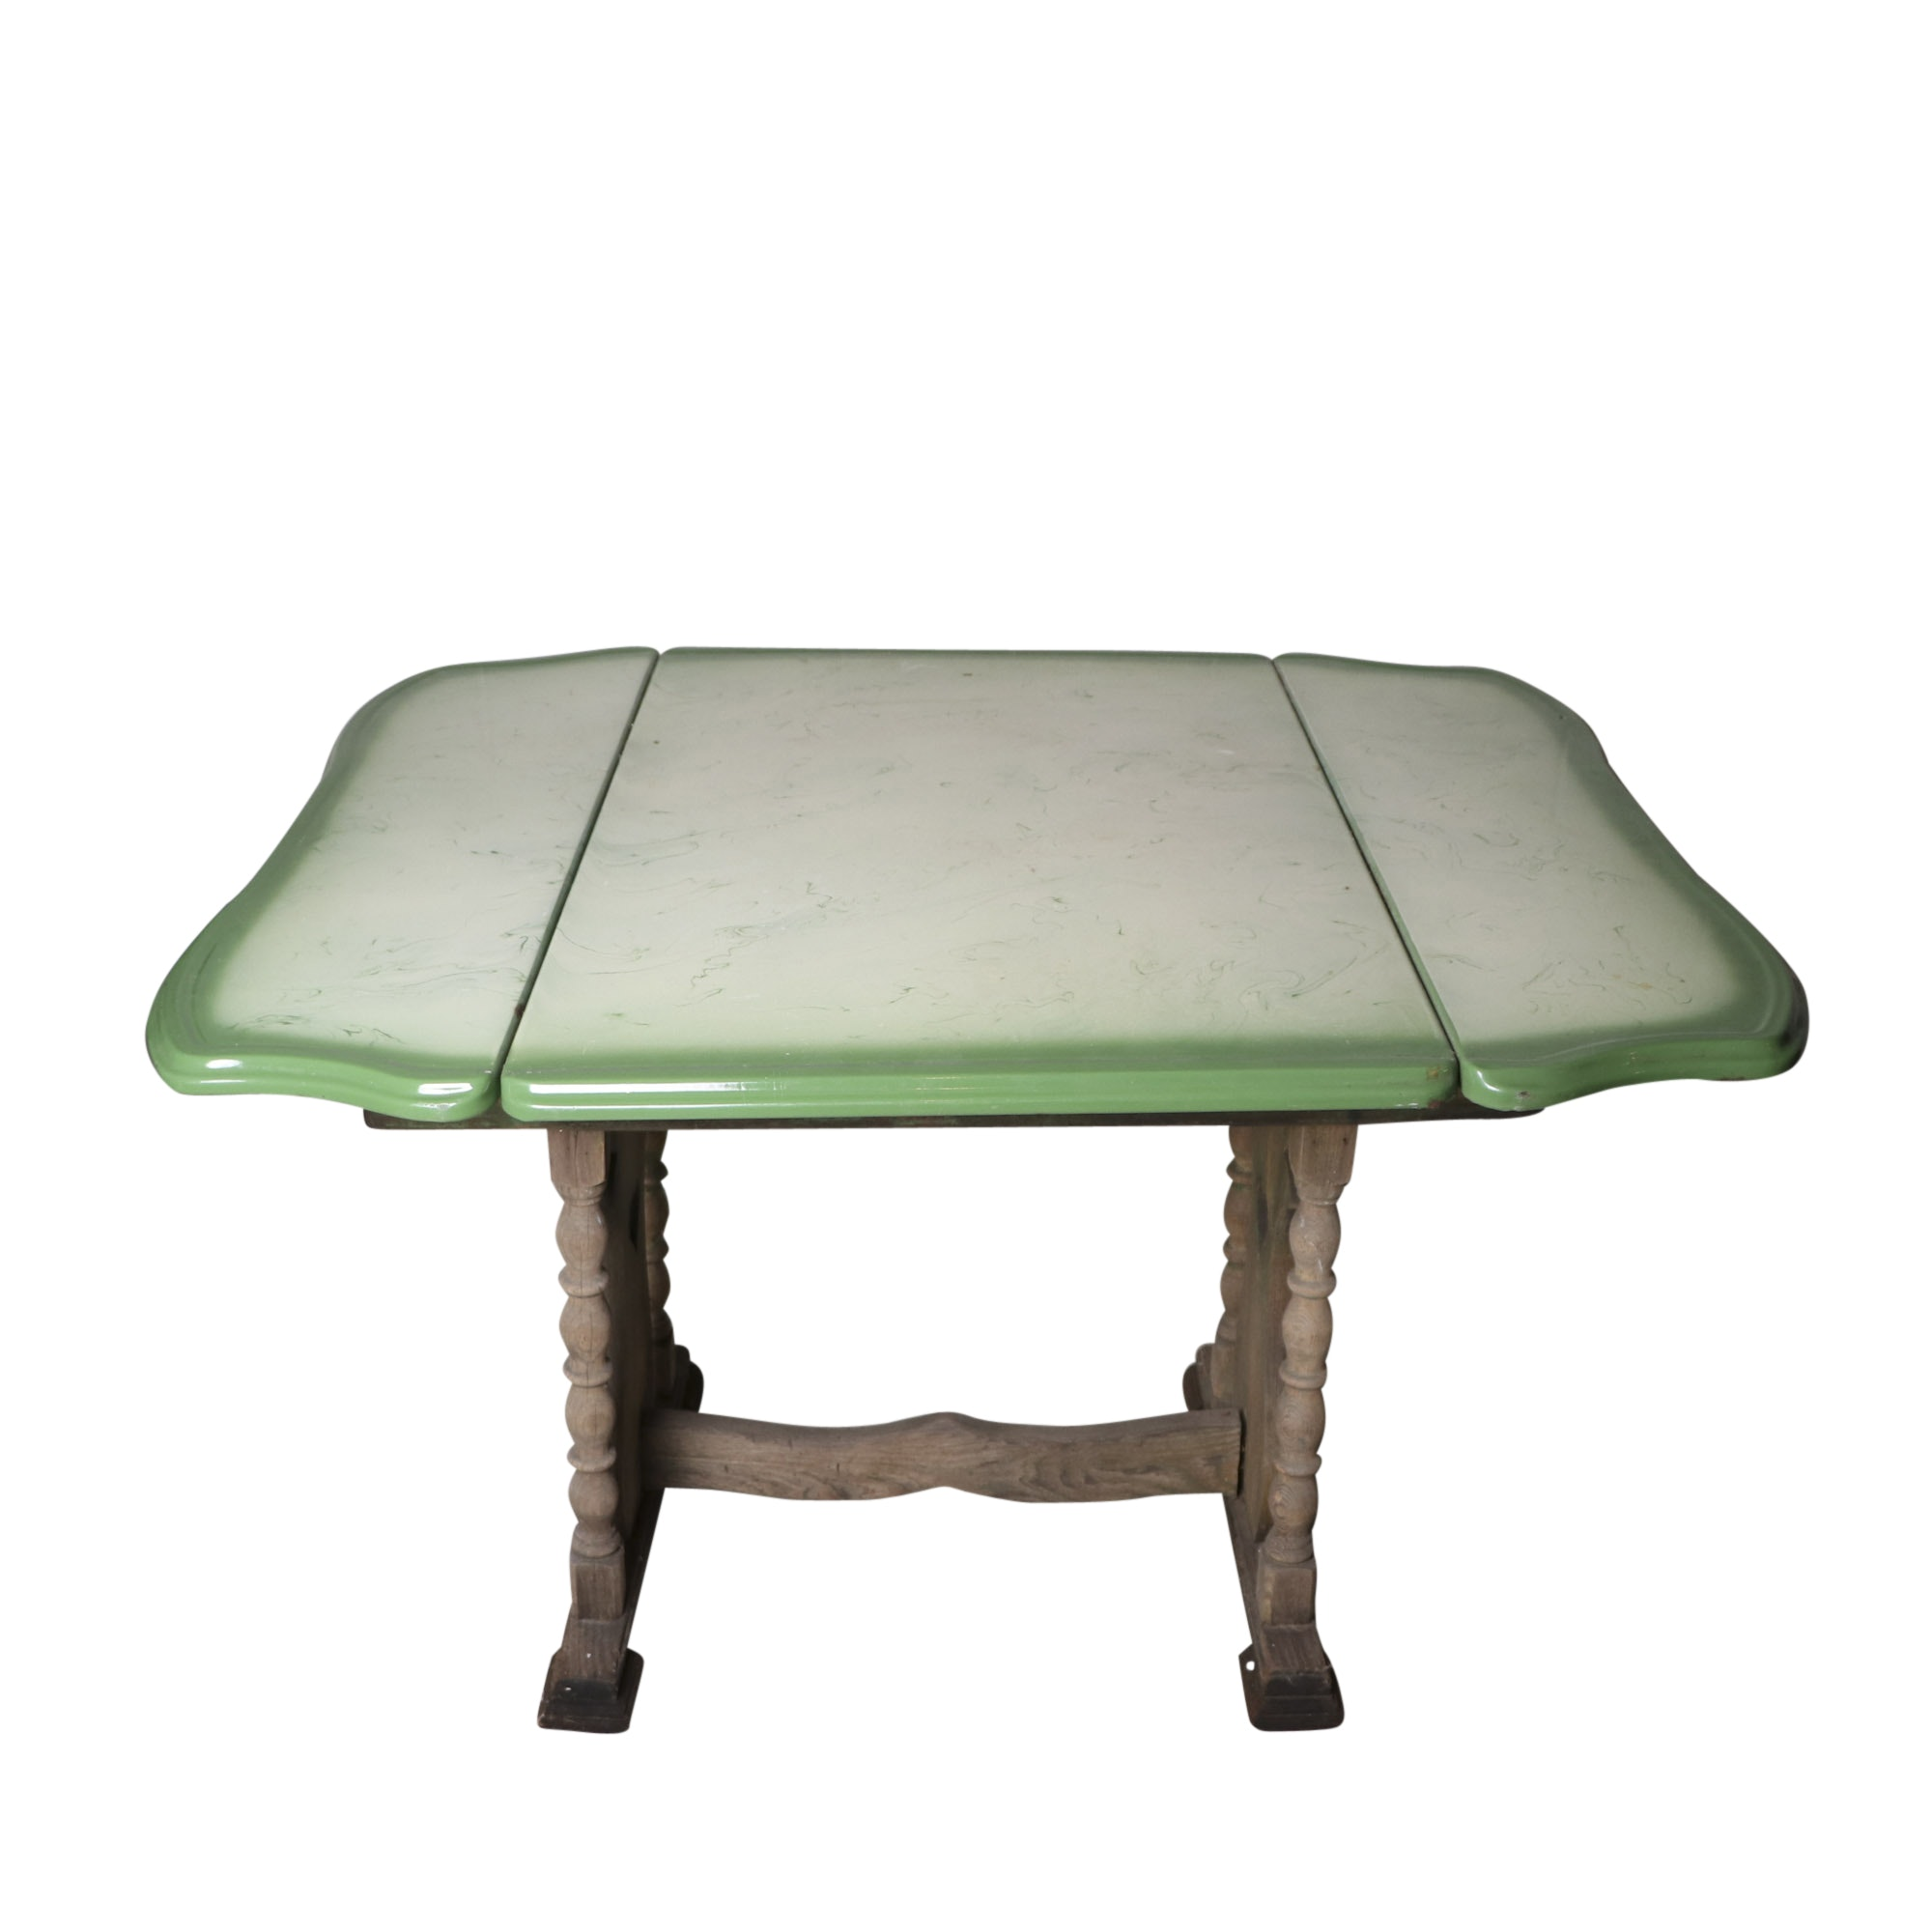 Vintage Wood Trestle Table with Enameled Tin Top